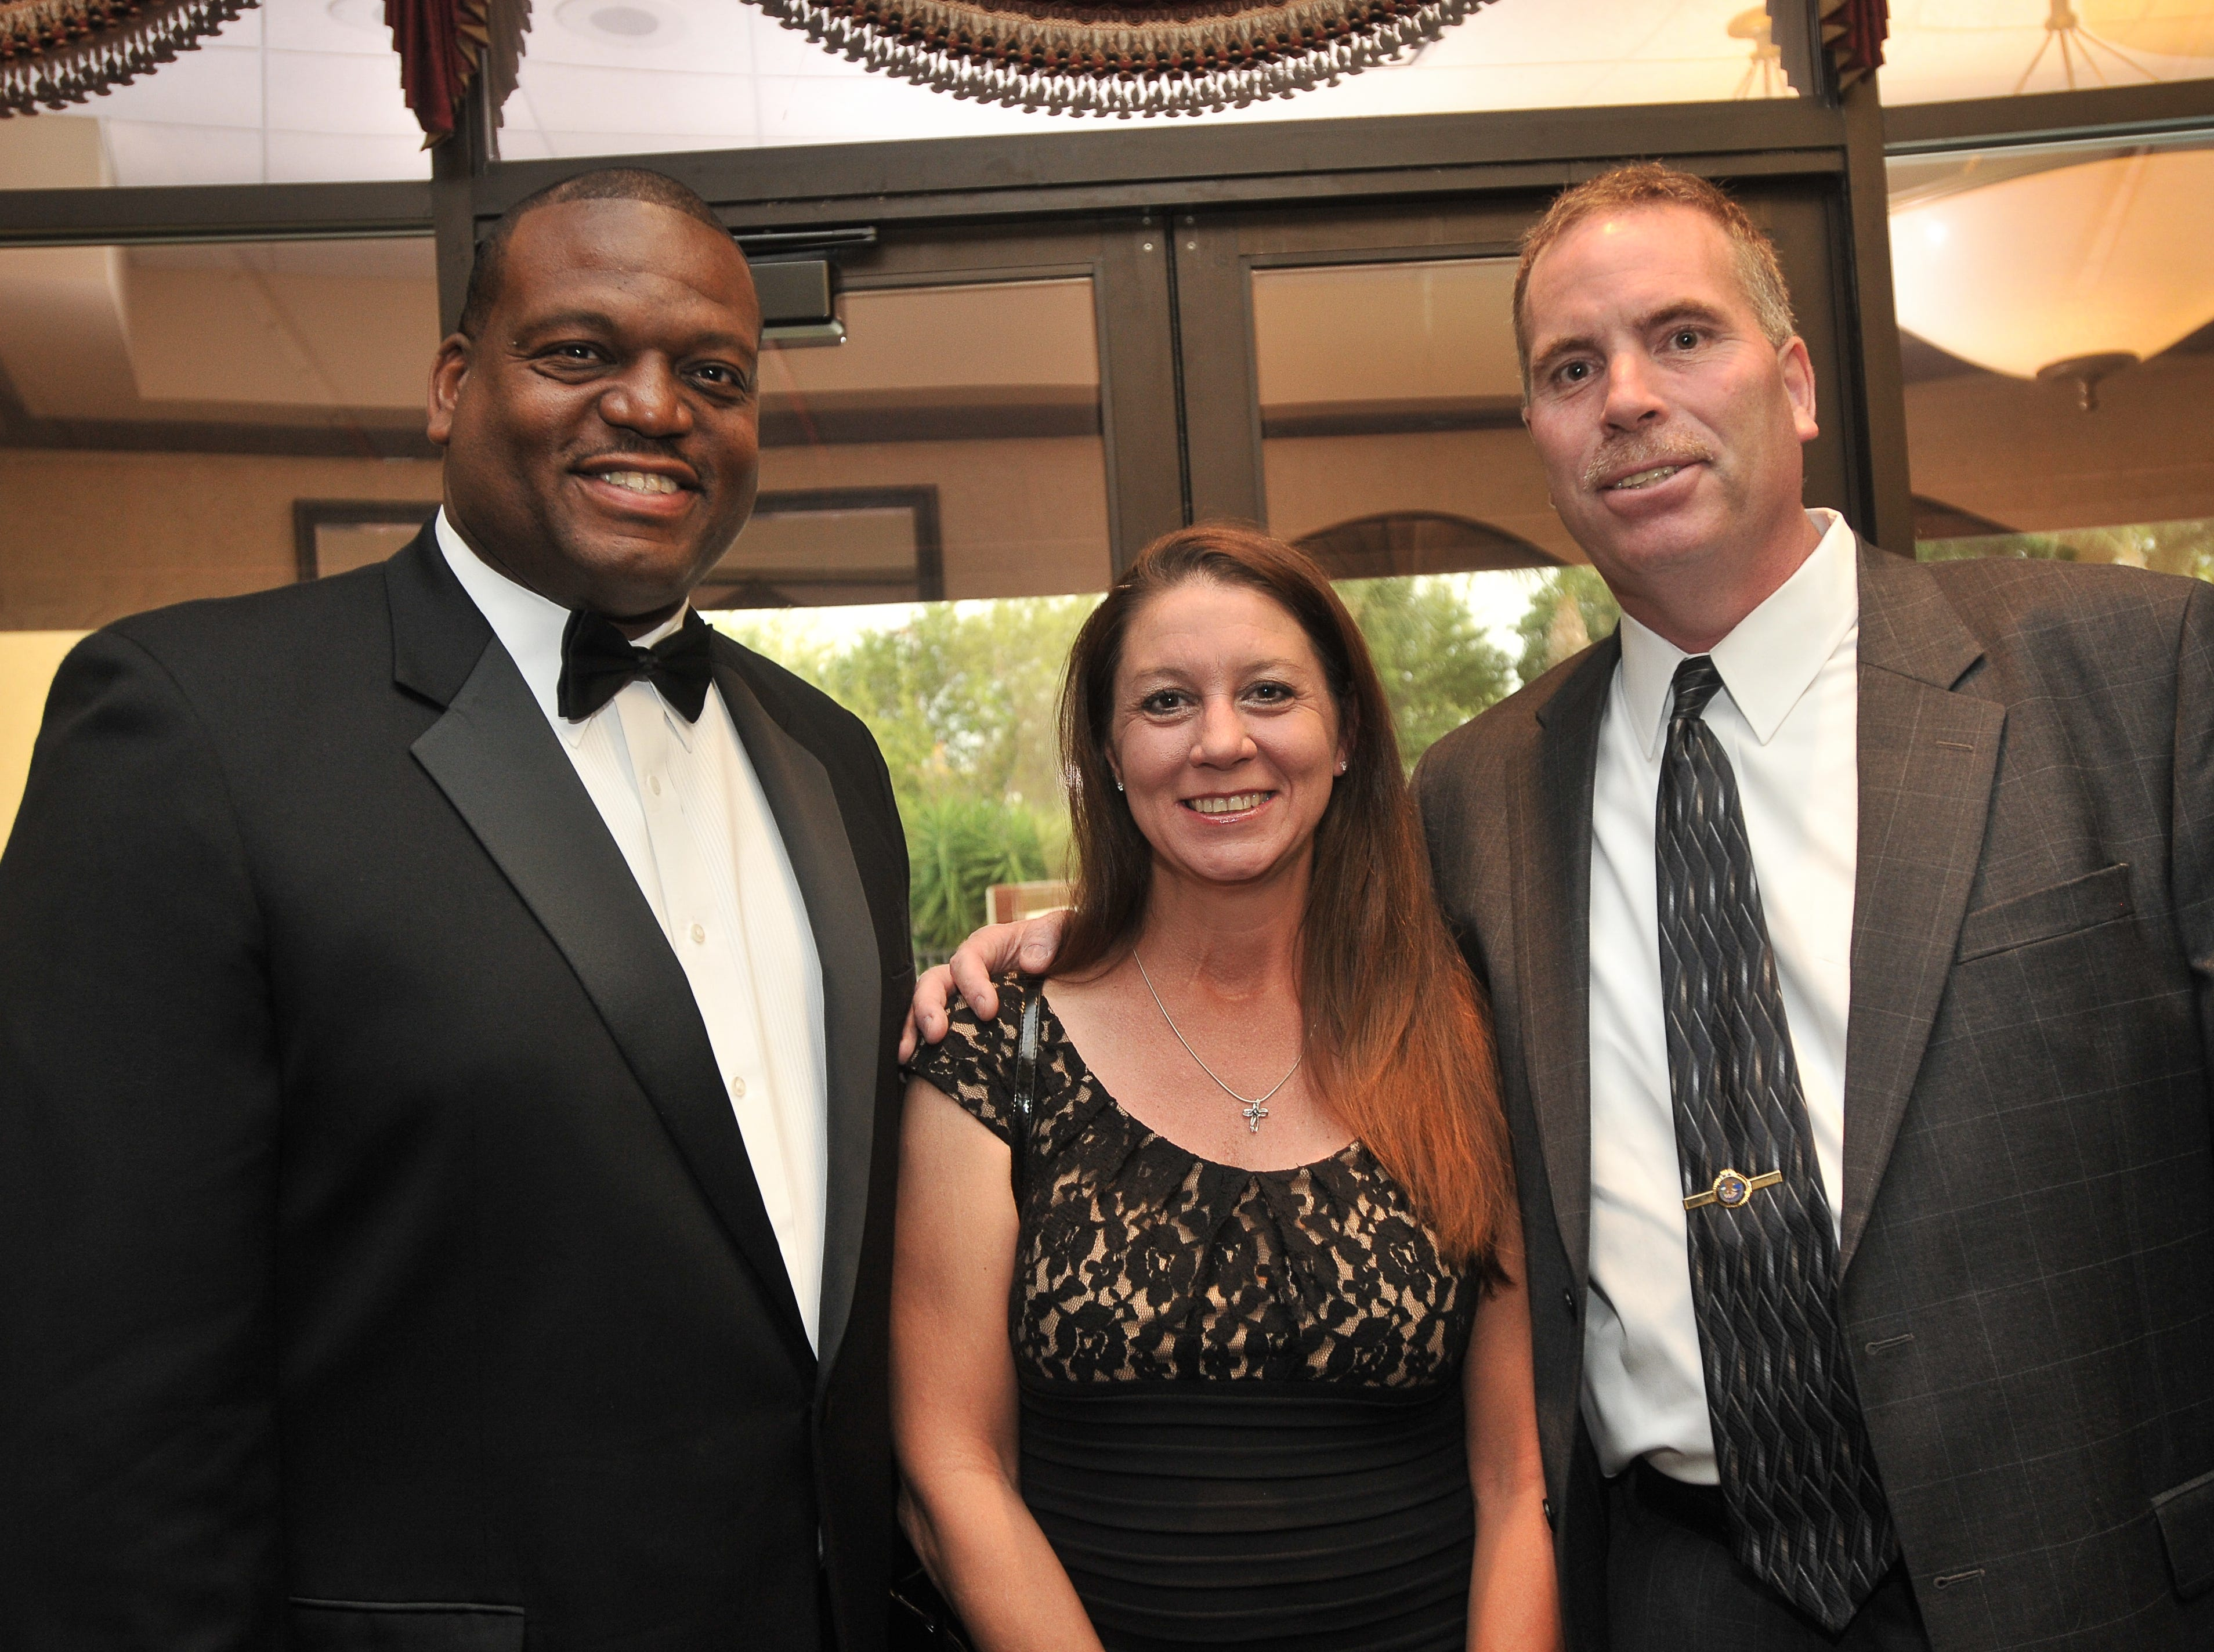 Adrian Moss-Beasley, Vanessa Brewer and John Lau pose together during Focus on the Factors, the annual fundraising event for National Veterans Homeless Support, at the Holiday Inn Viera.